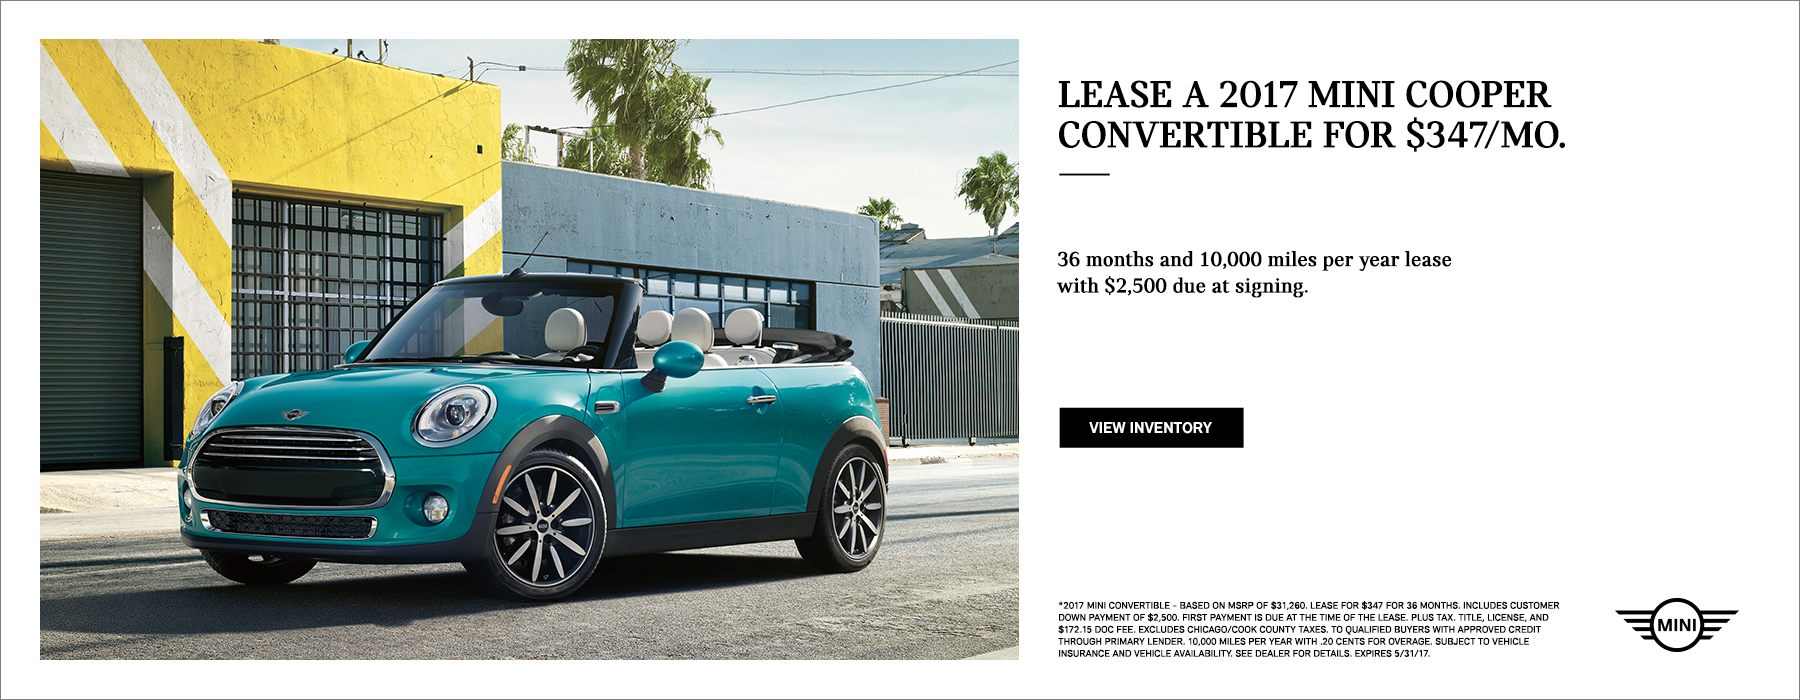 Bill_Jacobs_2017Convertible_Lease